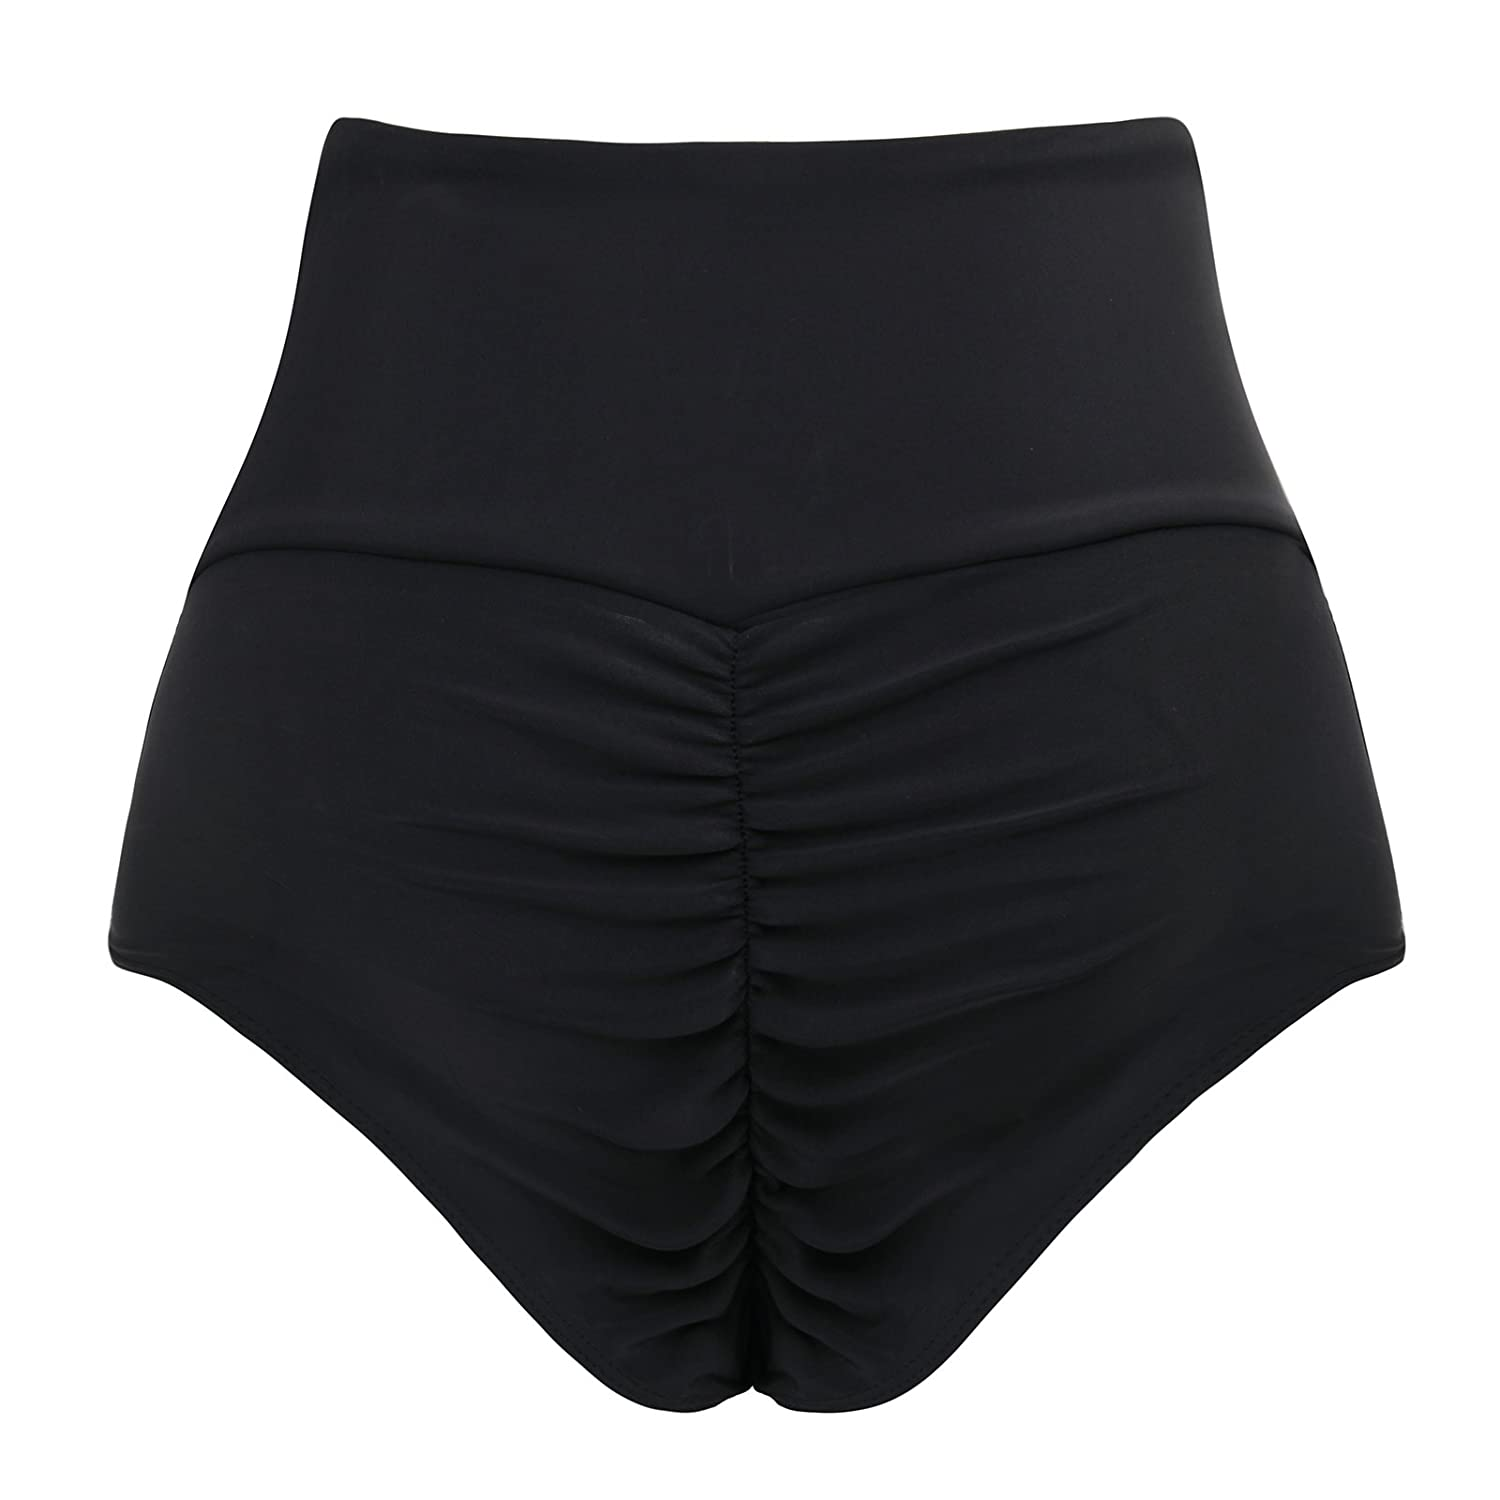 726d818987dd3 CENG MAU Women s Vintage Brazilian Ruched Butt High Waisted Bathing Bikini  Bottom  Amazon.co.uk  Clothing